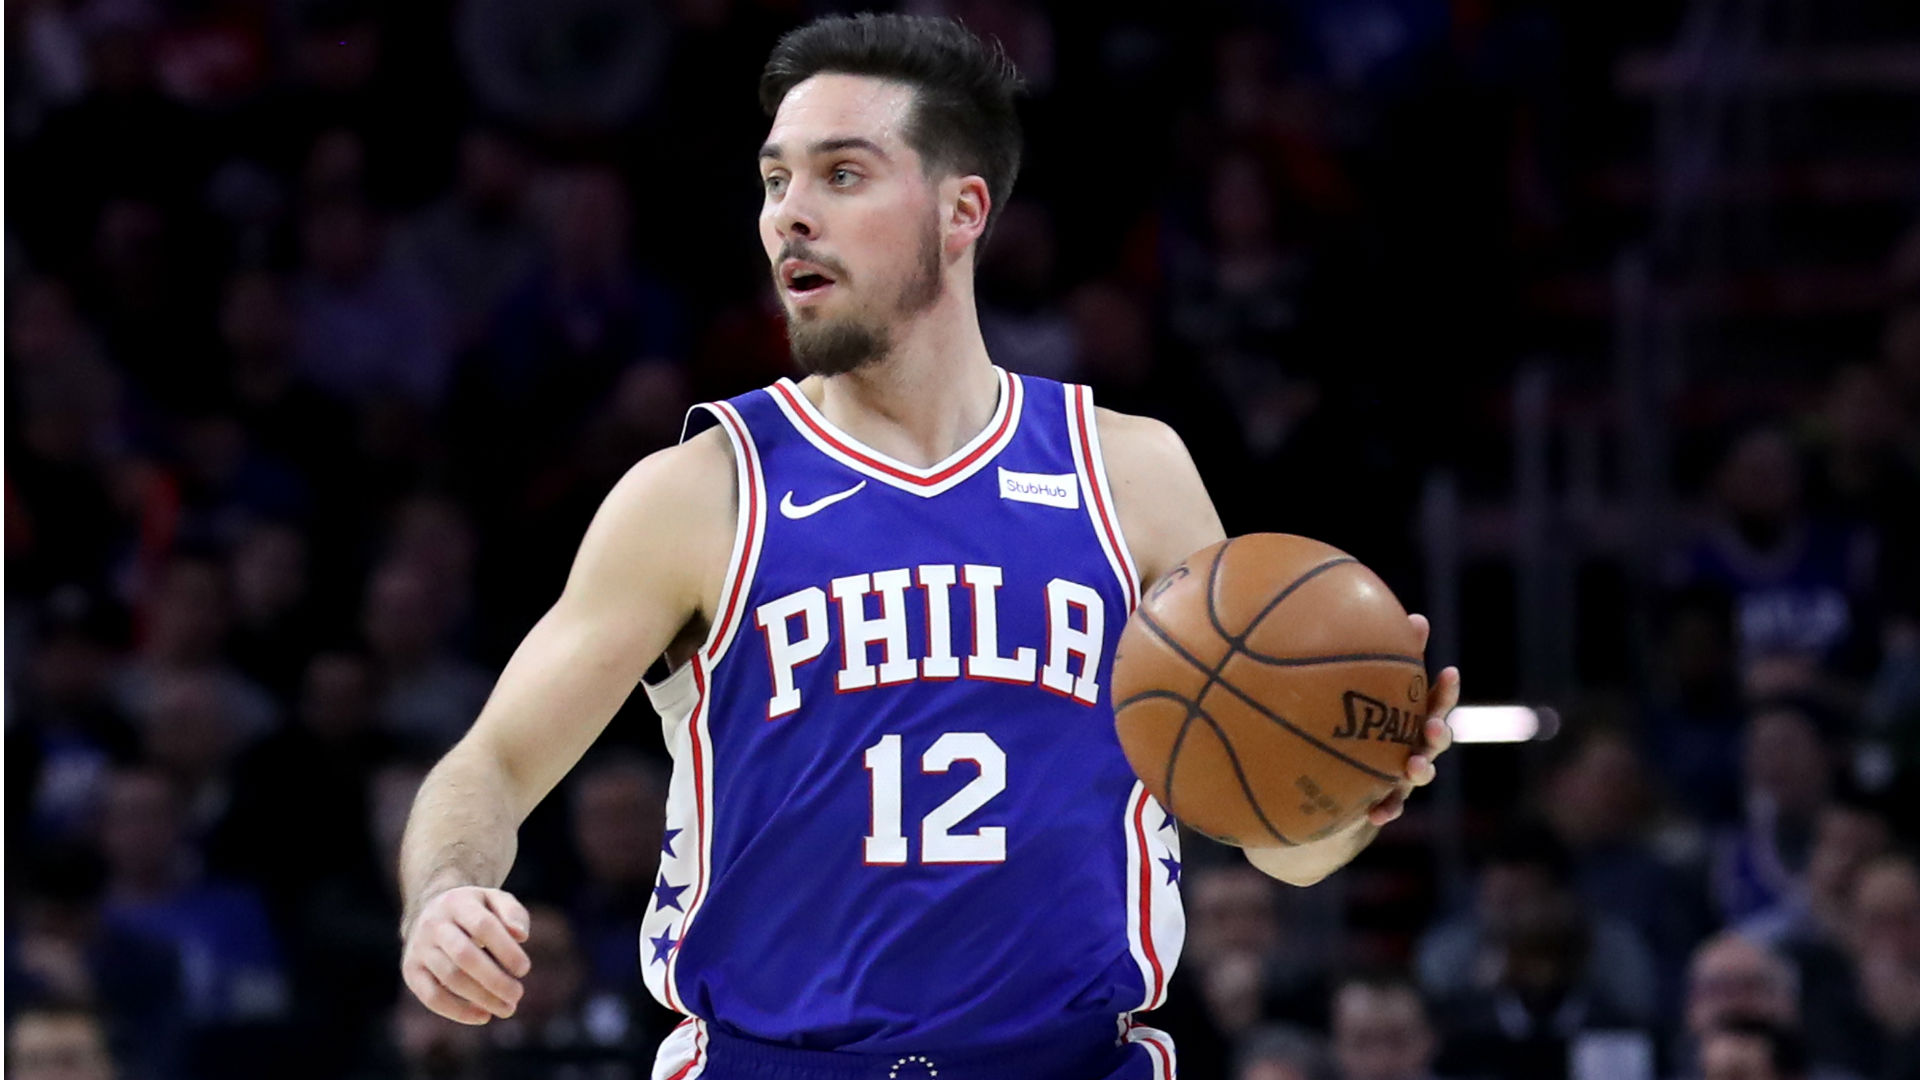 76ers: T.J. McConnell's Triple-double Off Bench Makes 76ers